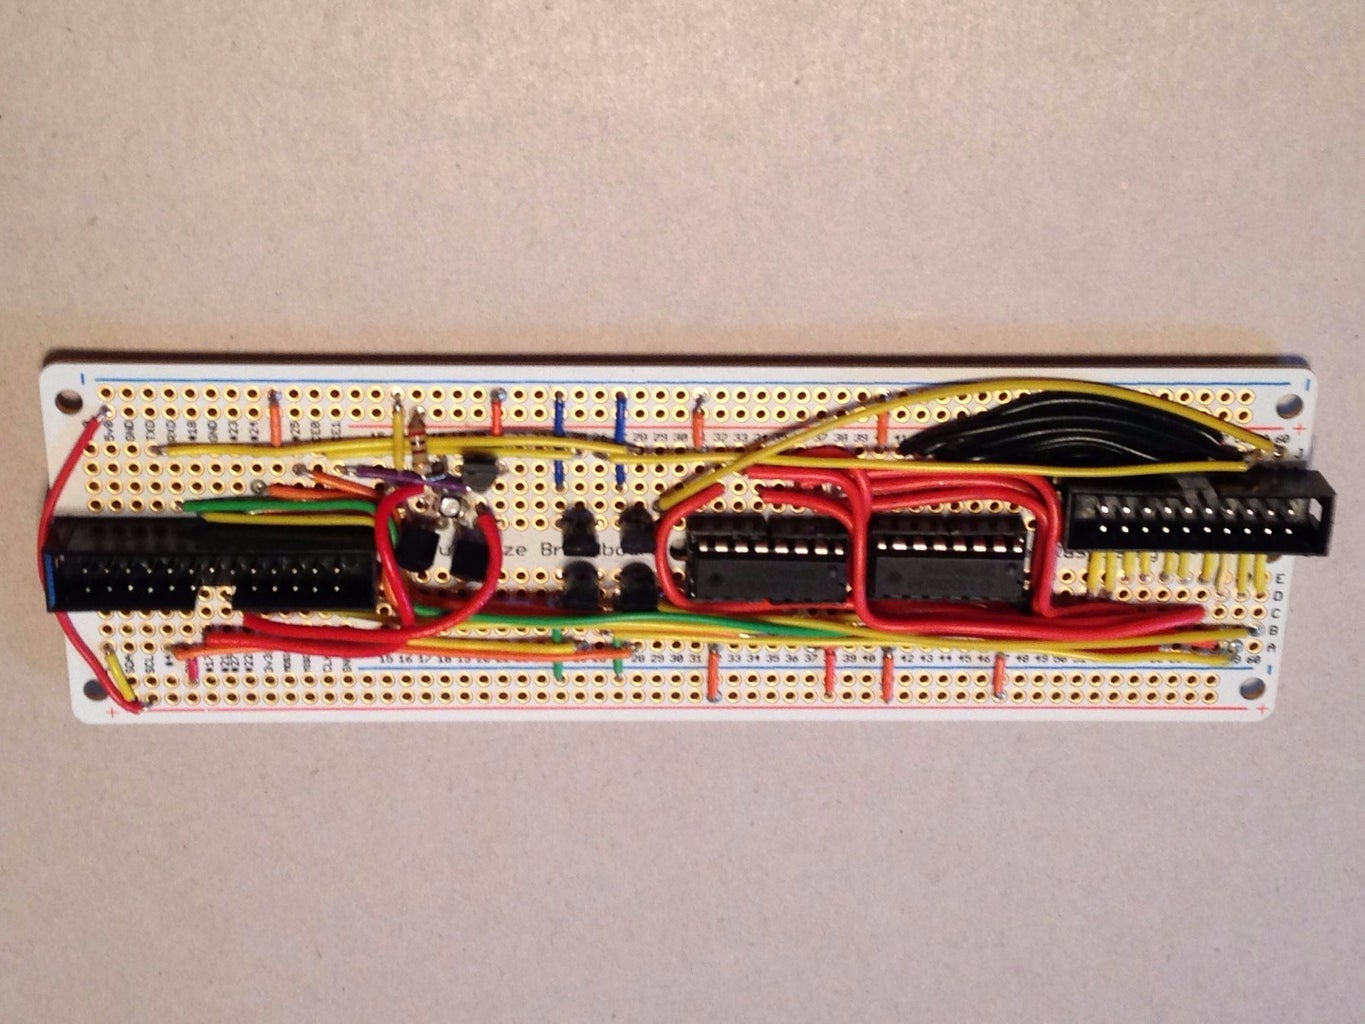 Solder the Control Circuit